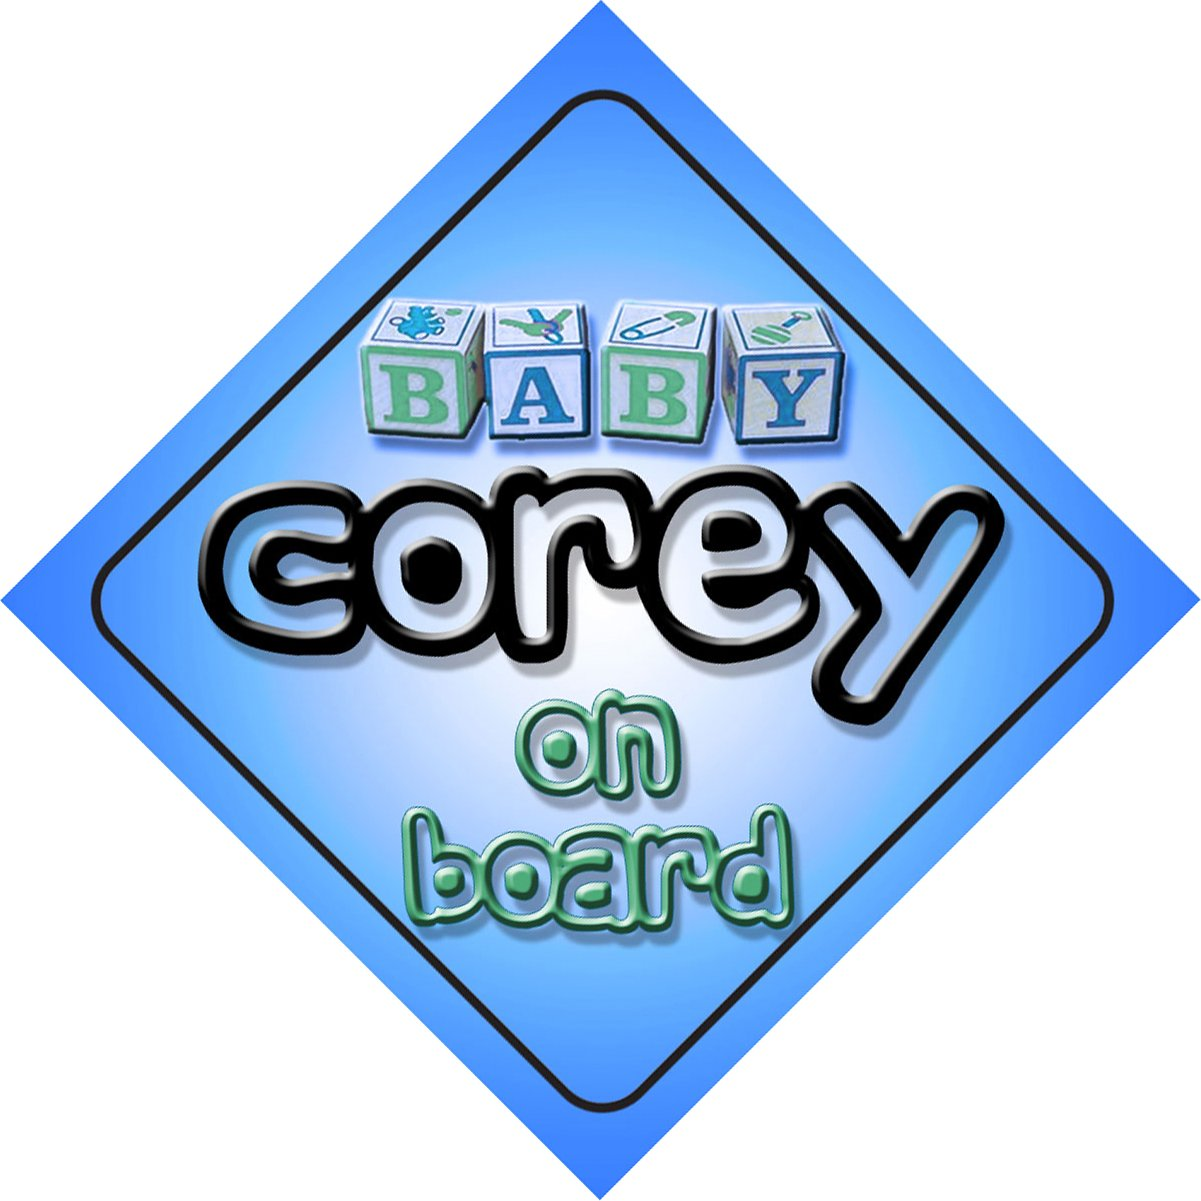 Baby Boy Corey on board novelty car sign gift / present for new child / newborn baby Quality Goods Ltd